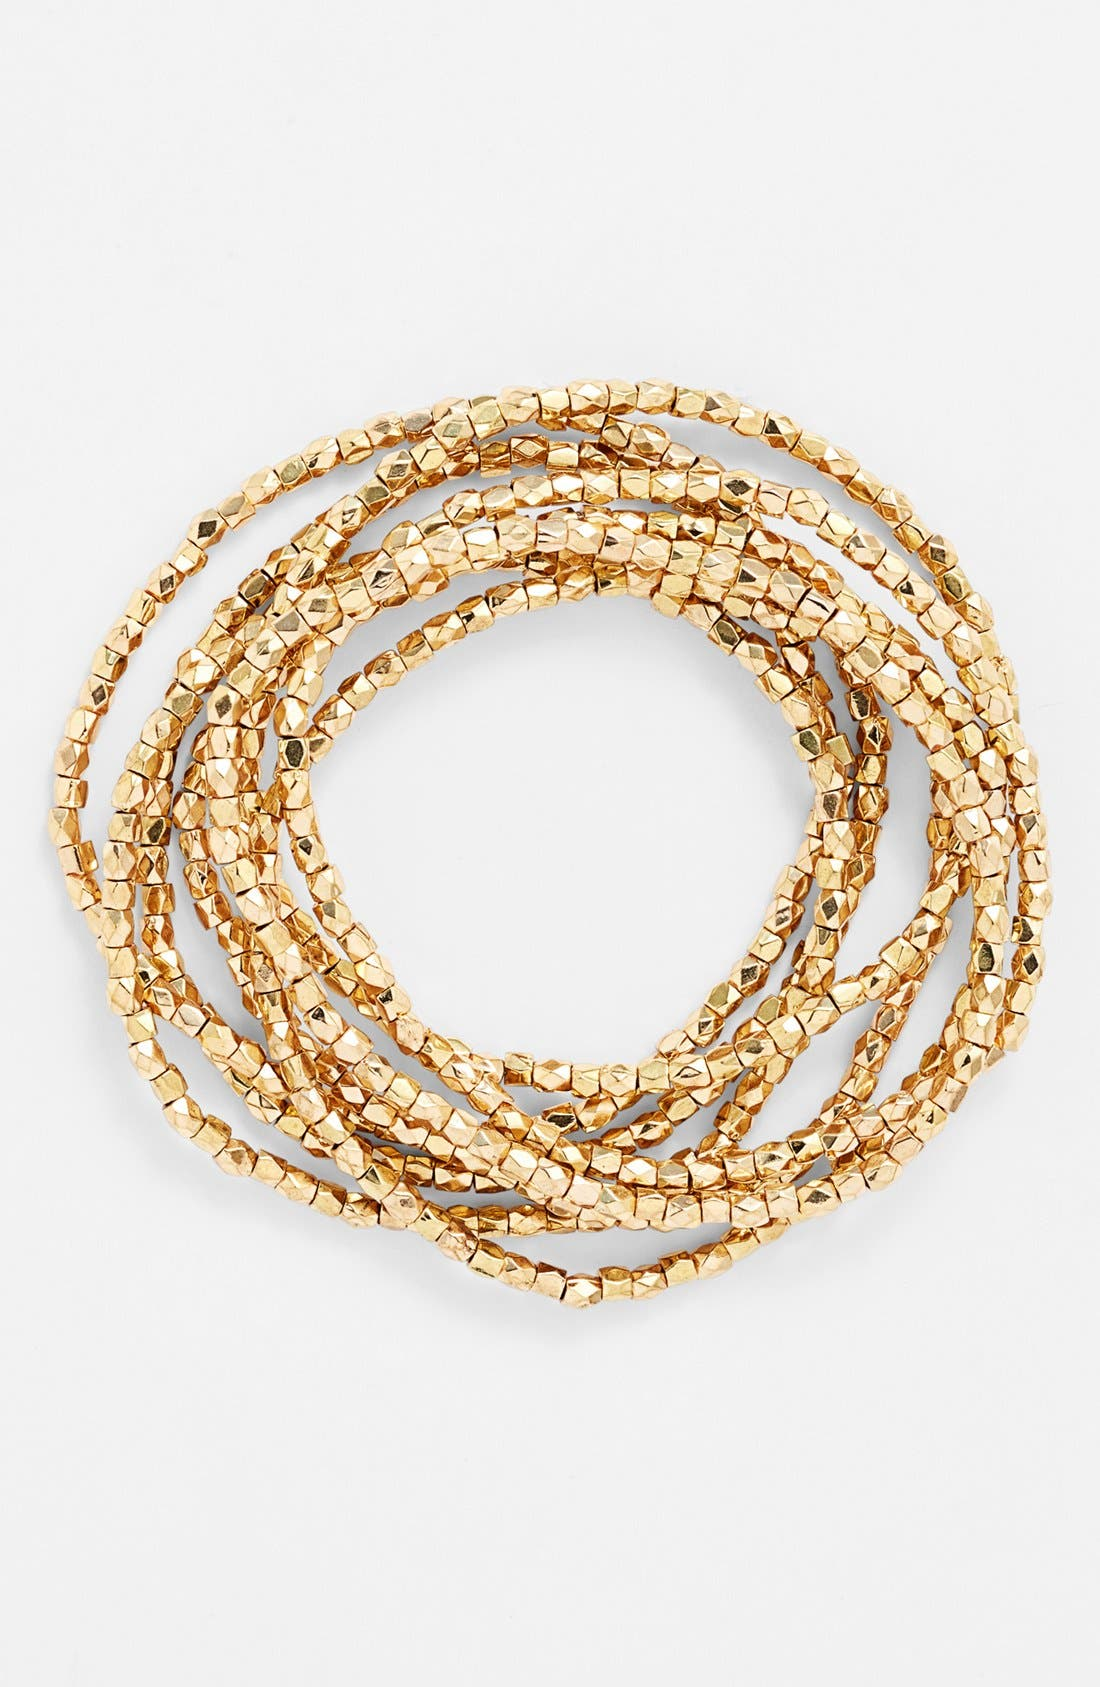 Main Image - Nordstrom 'Layers of Love' Bead Stretch Bracelets (Set of 7)